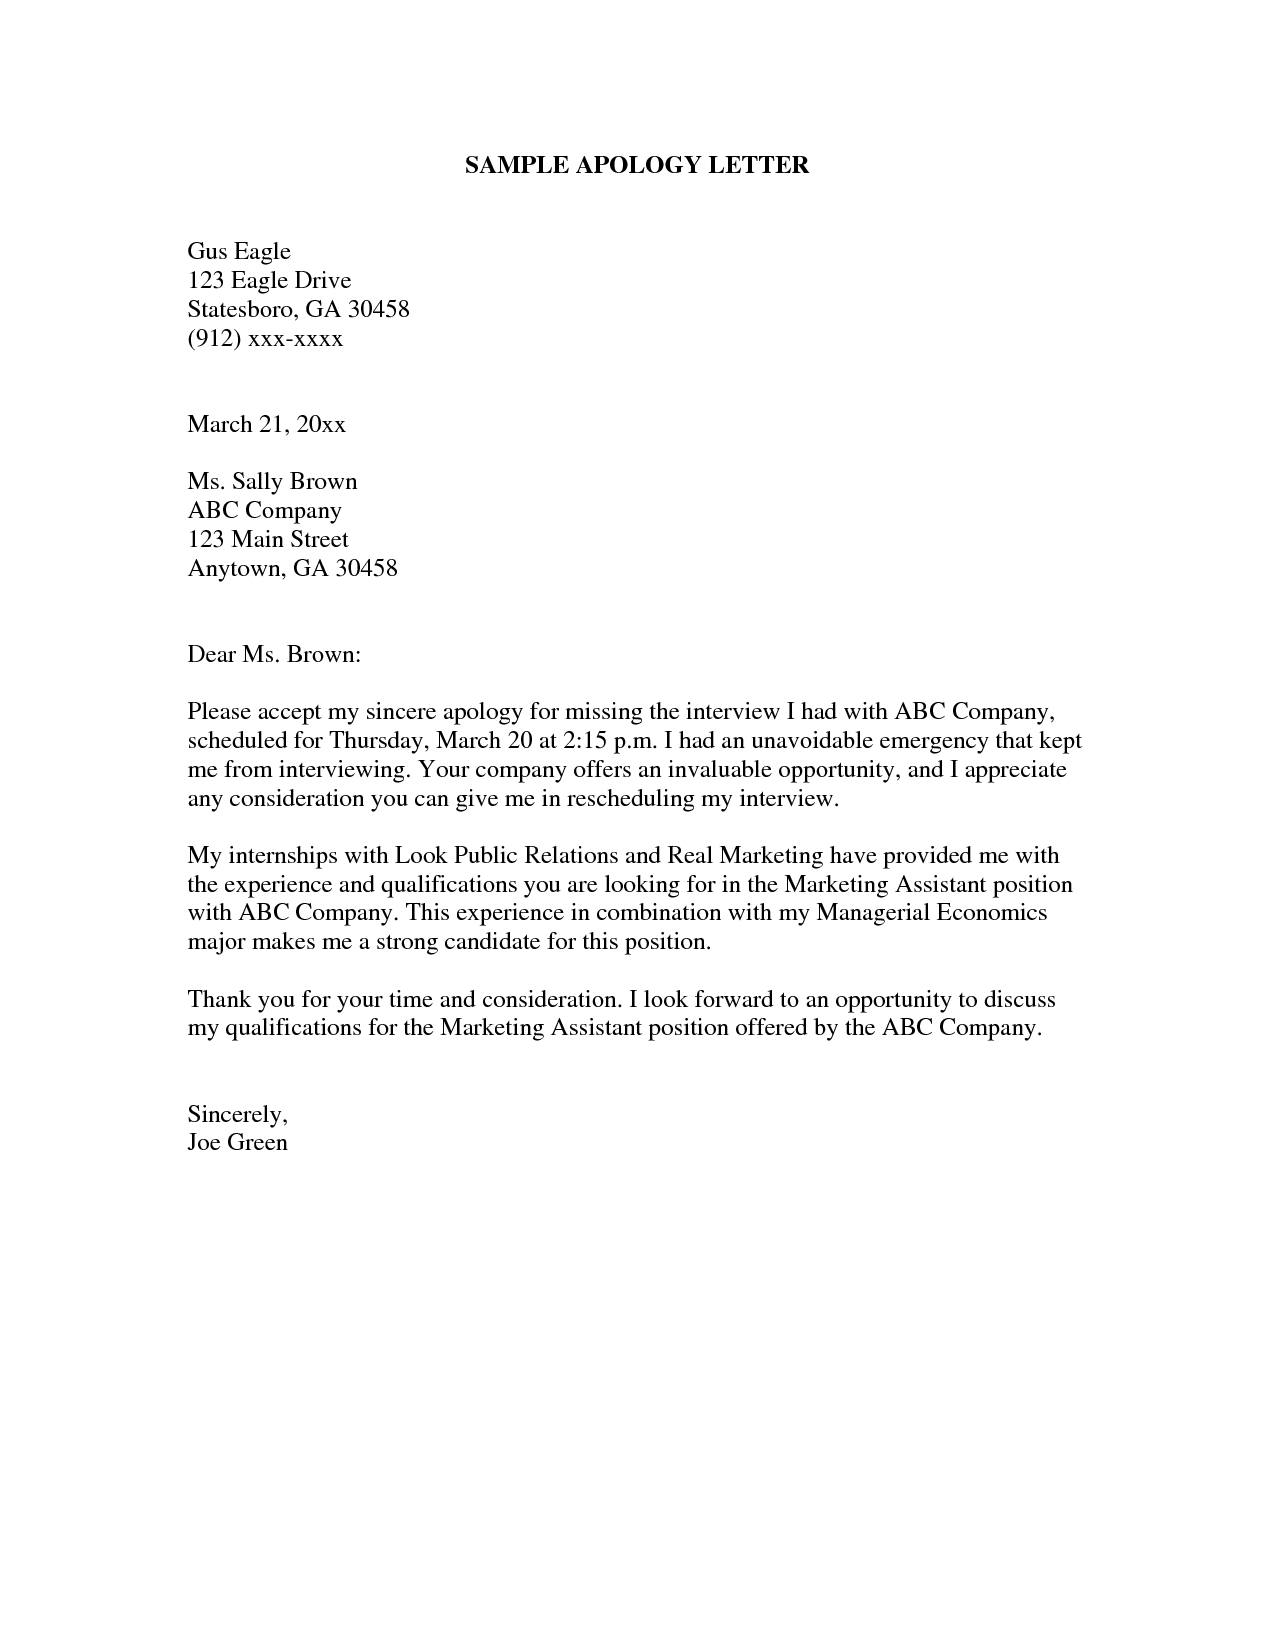 Business apology letter to customer | scrumps.